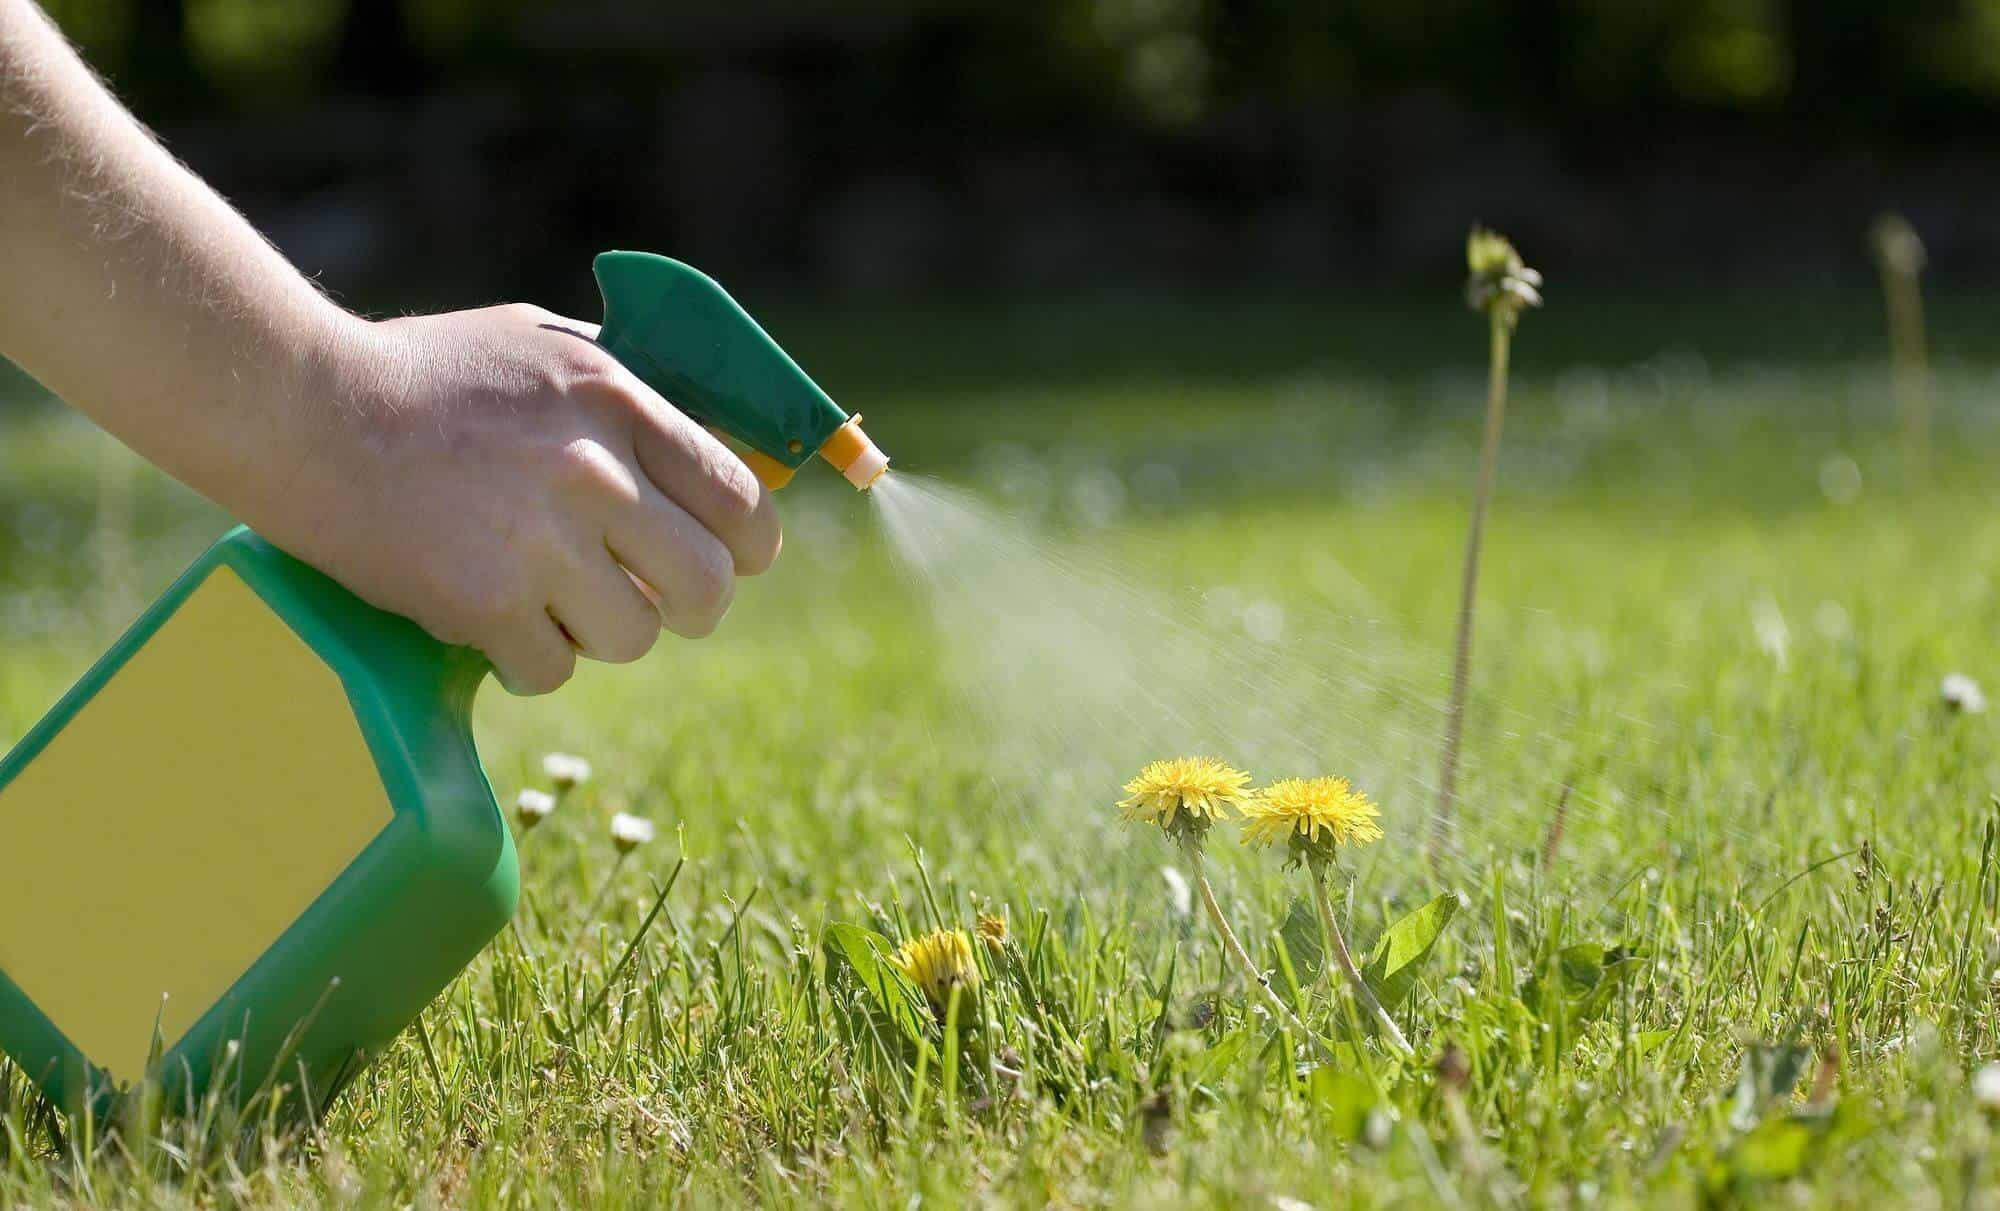 How To Kill Weeds With Homemade Weed Killer and Other Natural Methods